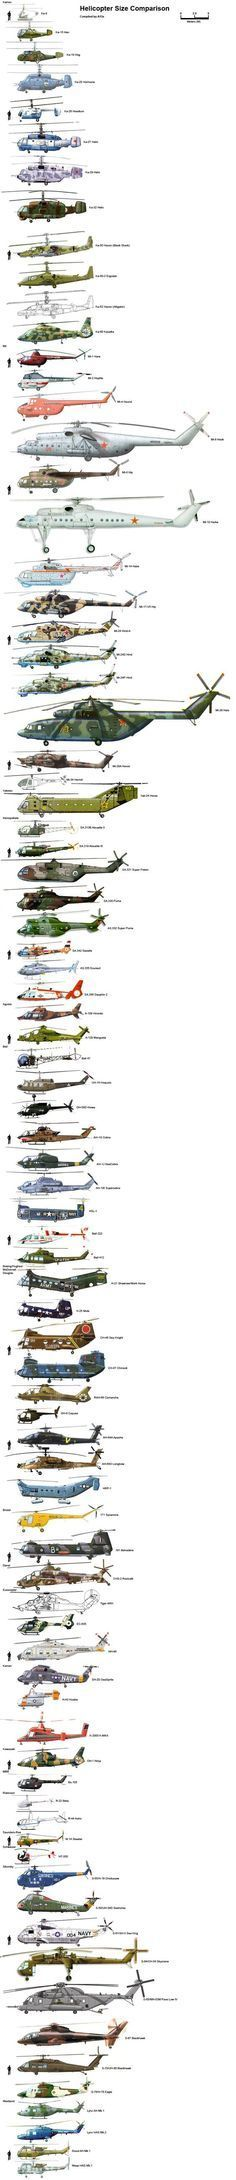 comparaison-taille-helicoptere - La boite verte (:Tap The LINK NOW:) We provide the best essential unique equipment and gear for active duty American patriotic military branches, well strategic selected.We love tactical American gear